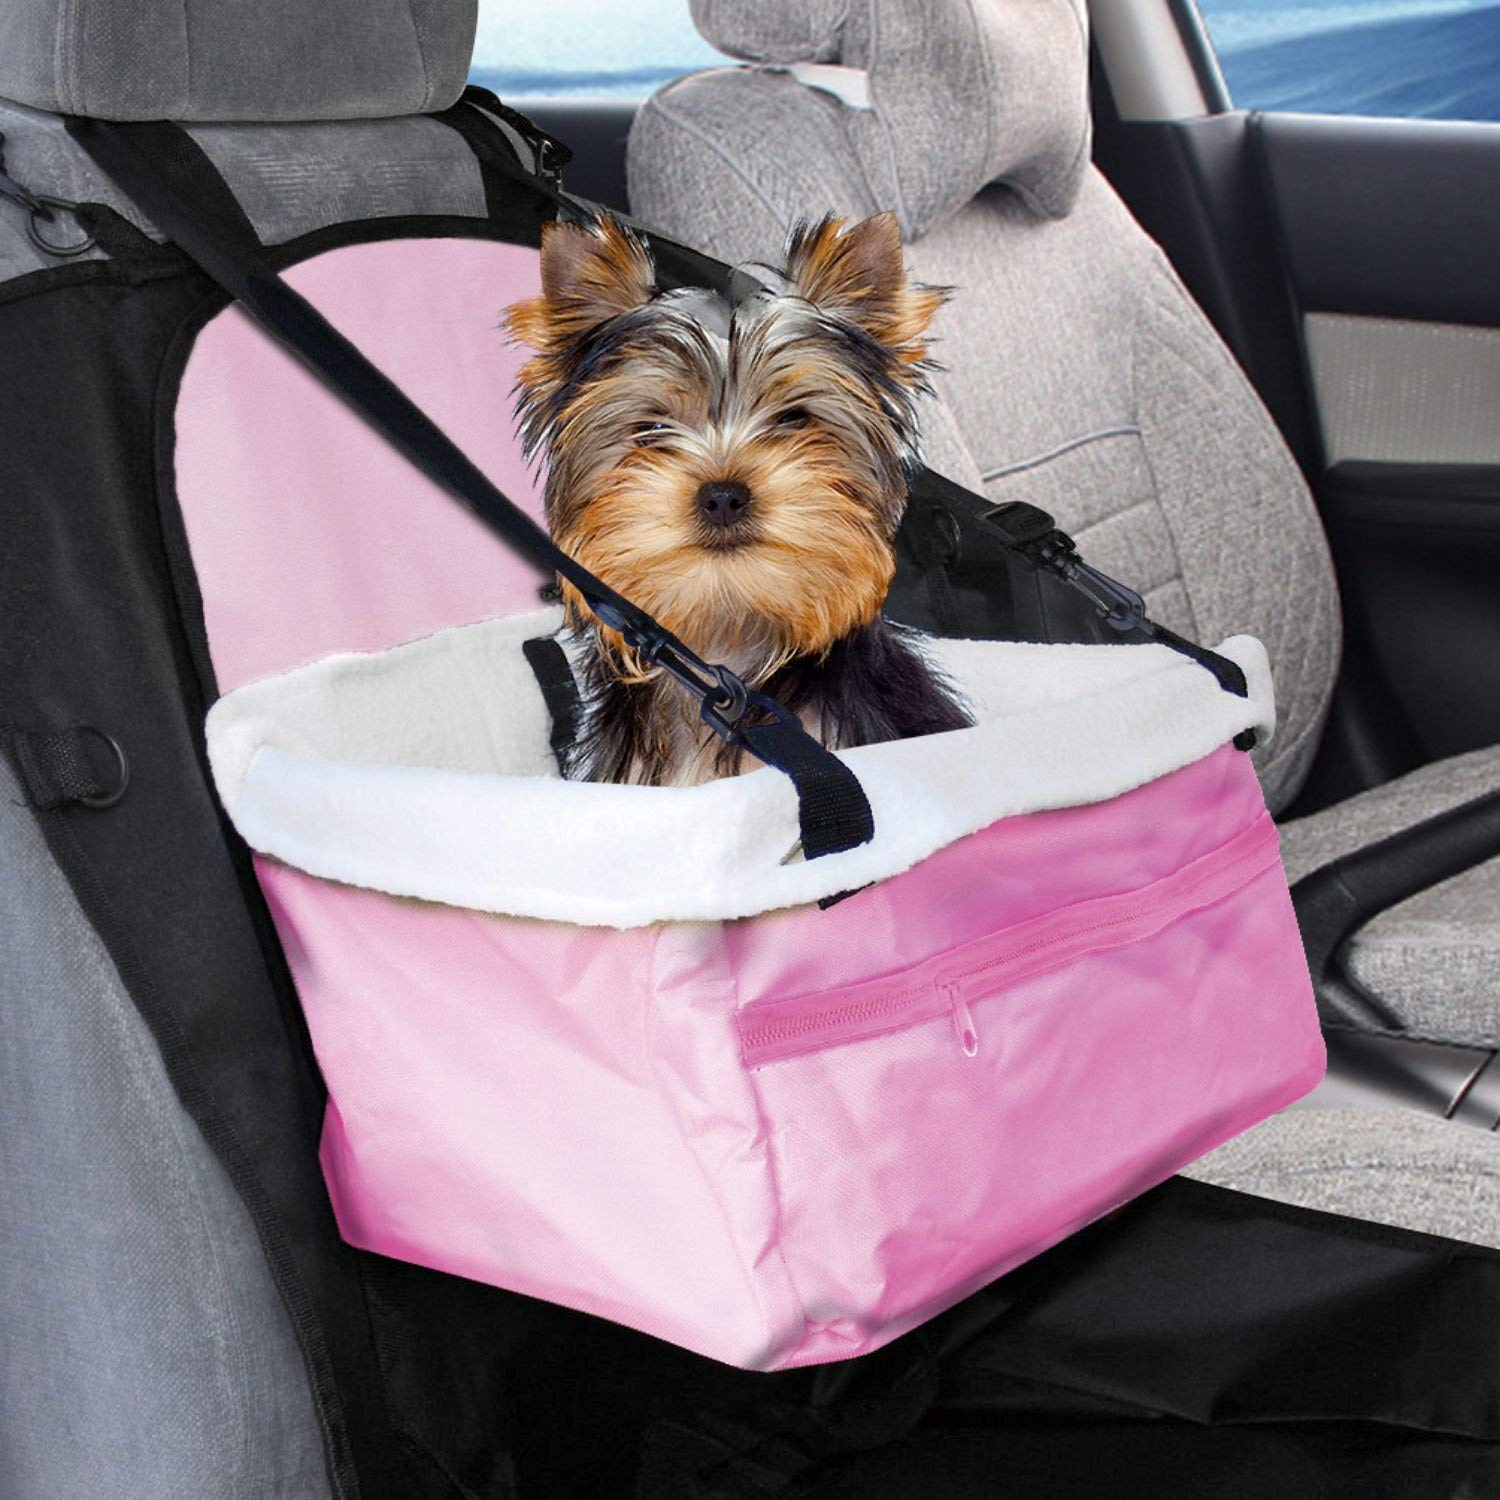 Pet Travel Foldable Soft Interior Car Booster Seat Pet Carrier Seat Protector For Small Dogs Cats Puppy Pink